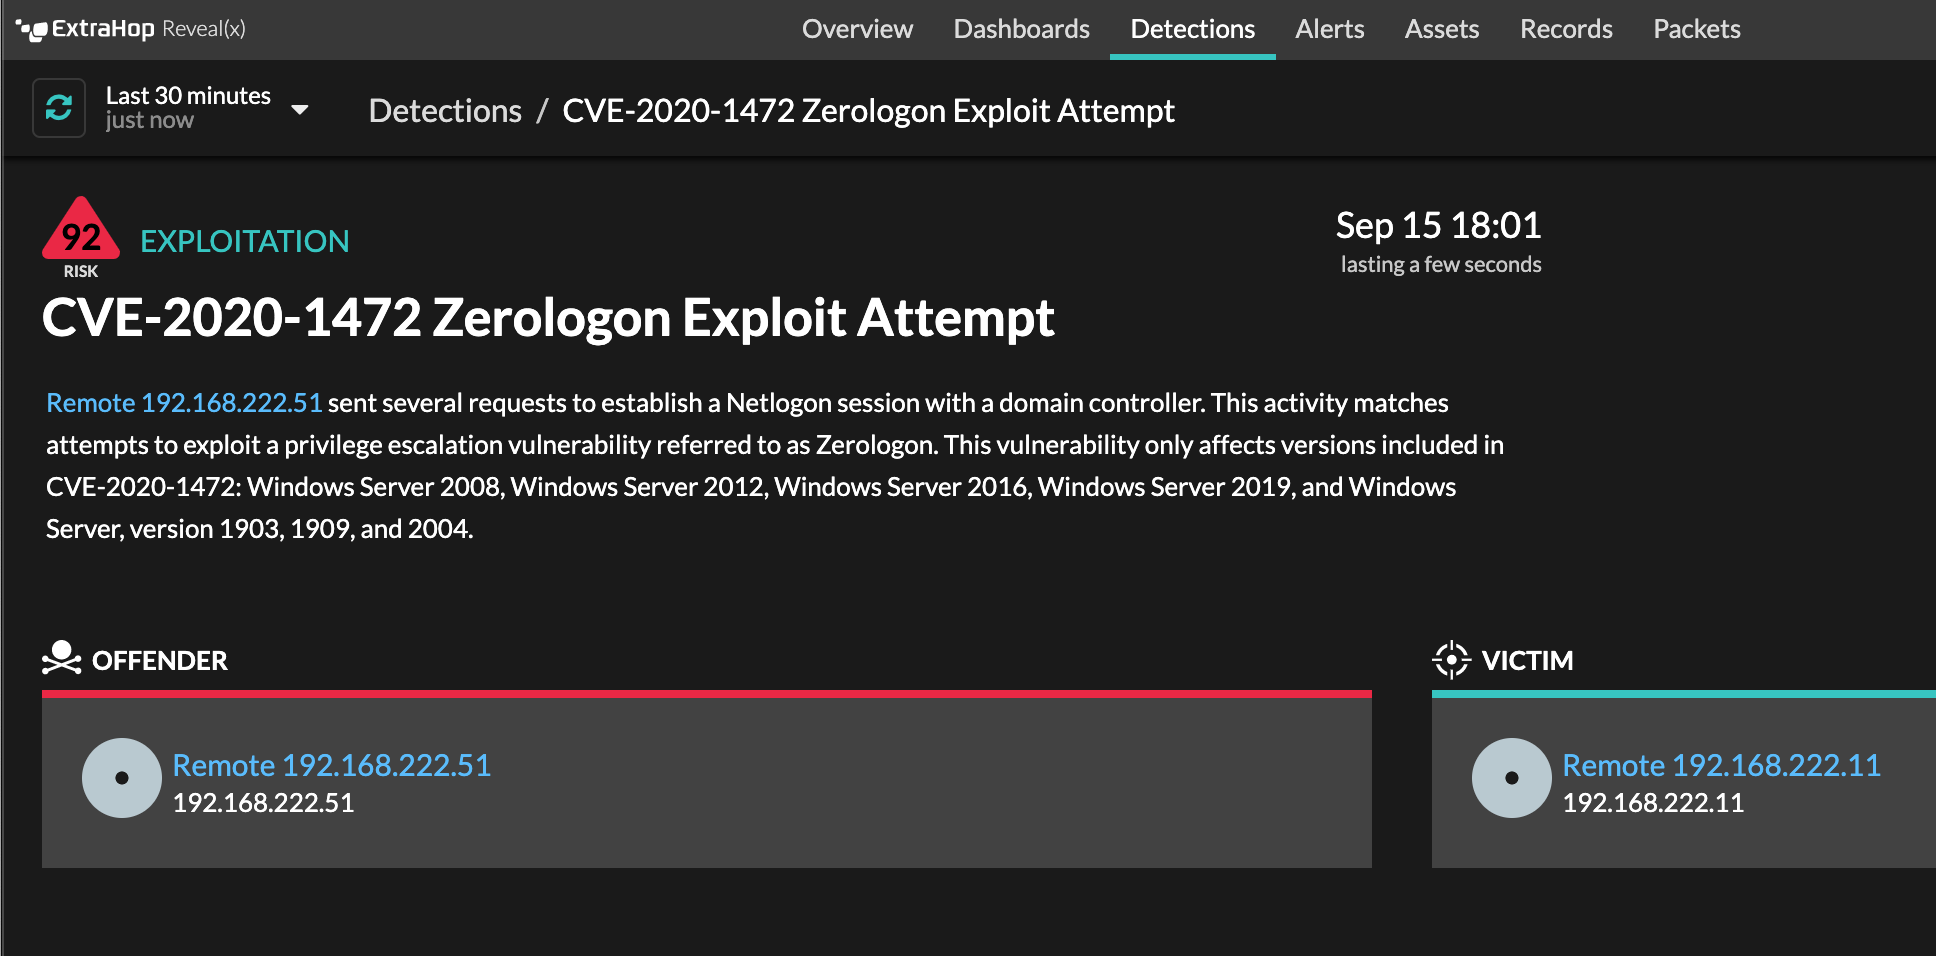 ExtraHop Reveal(x) detection for zerologon vulnerability